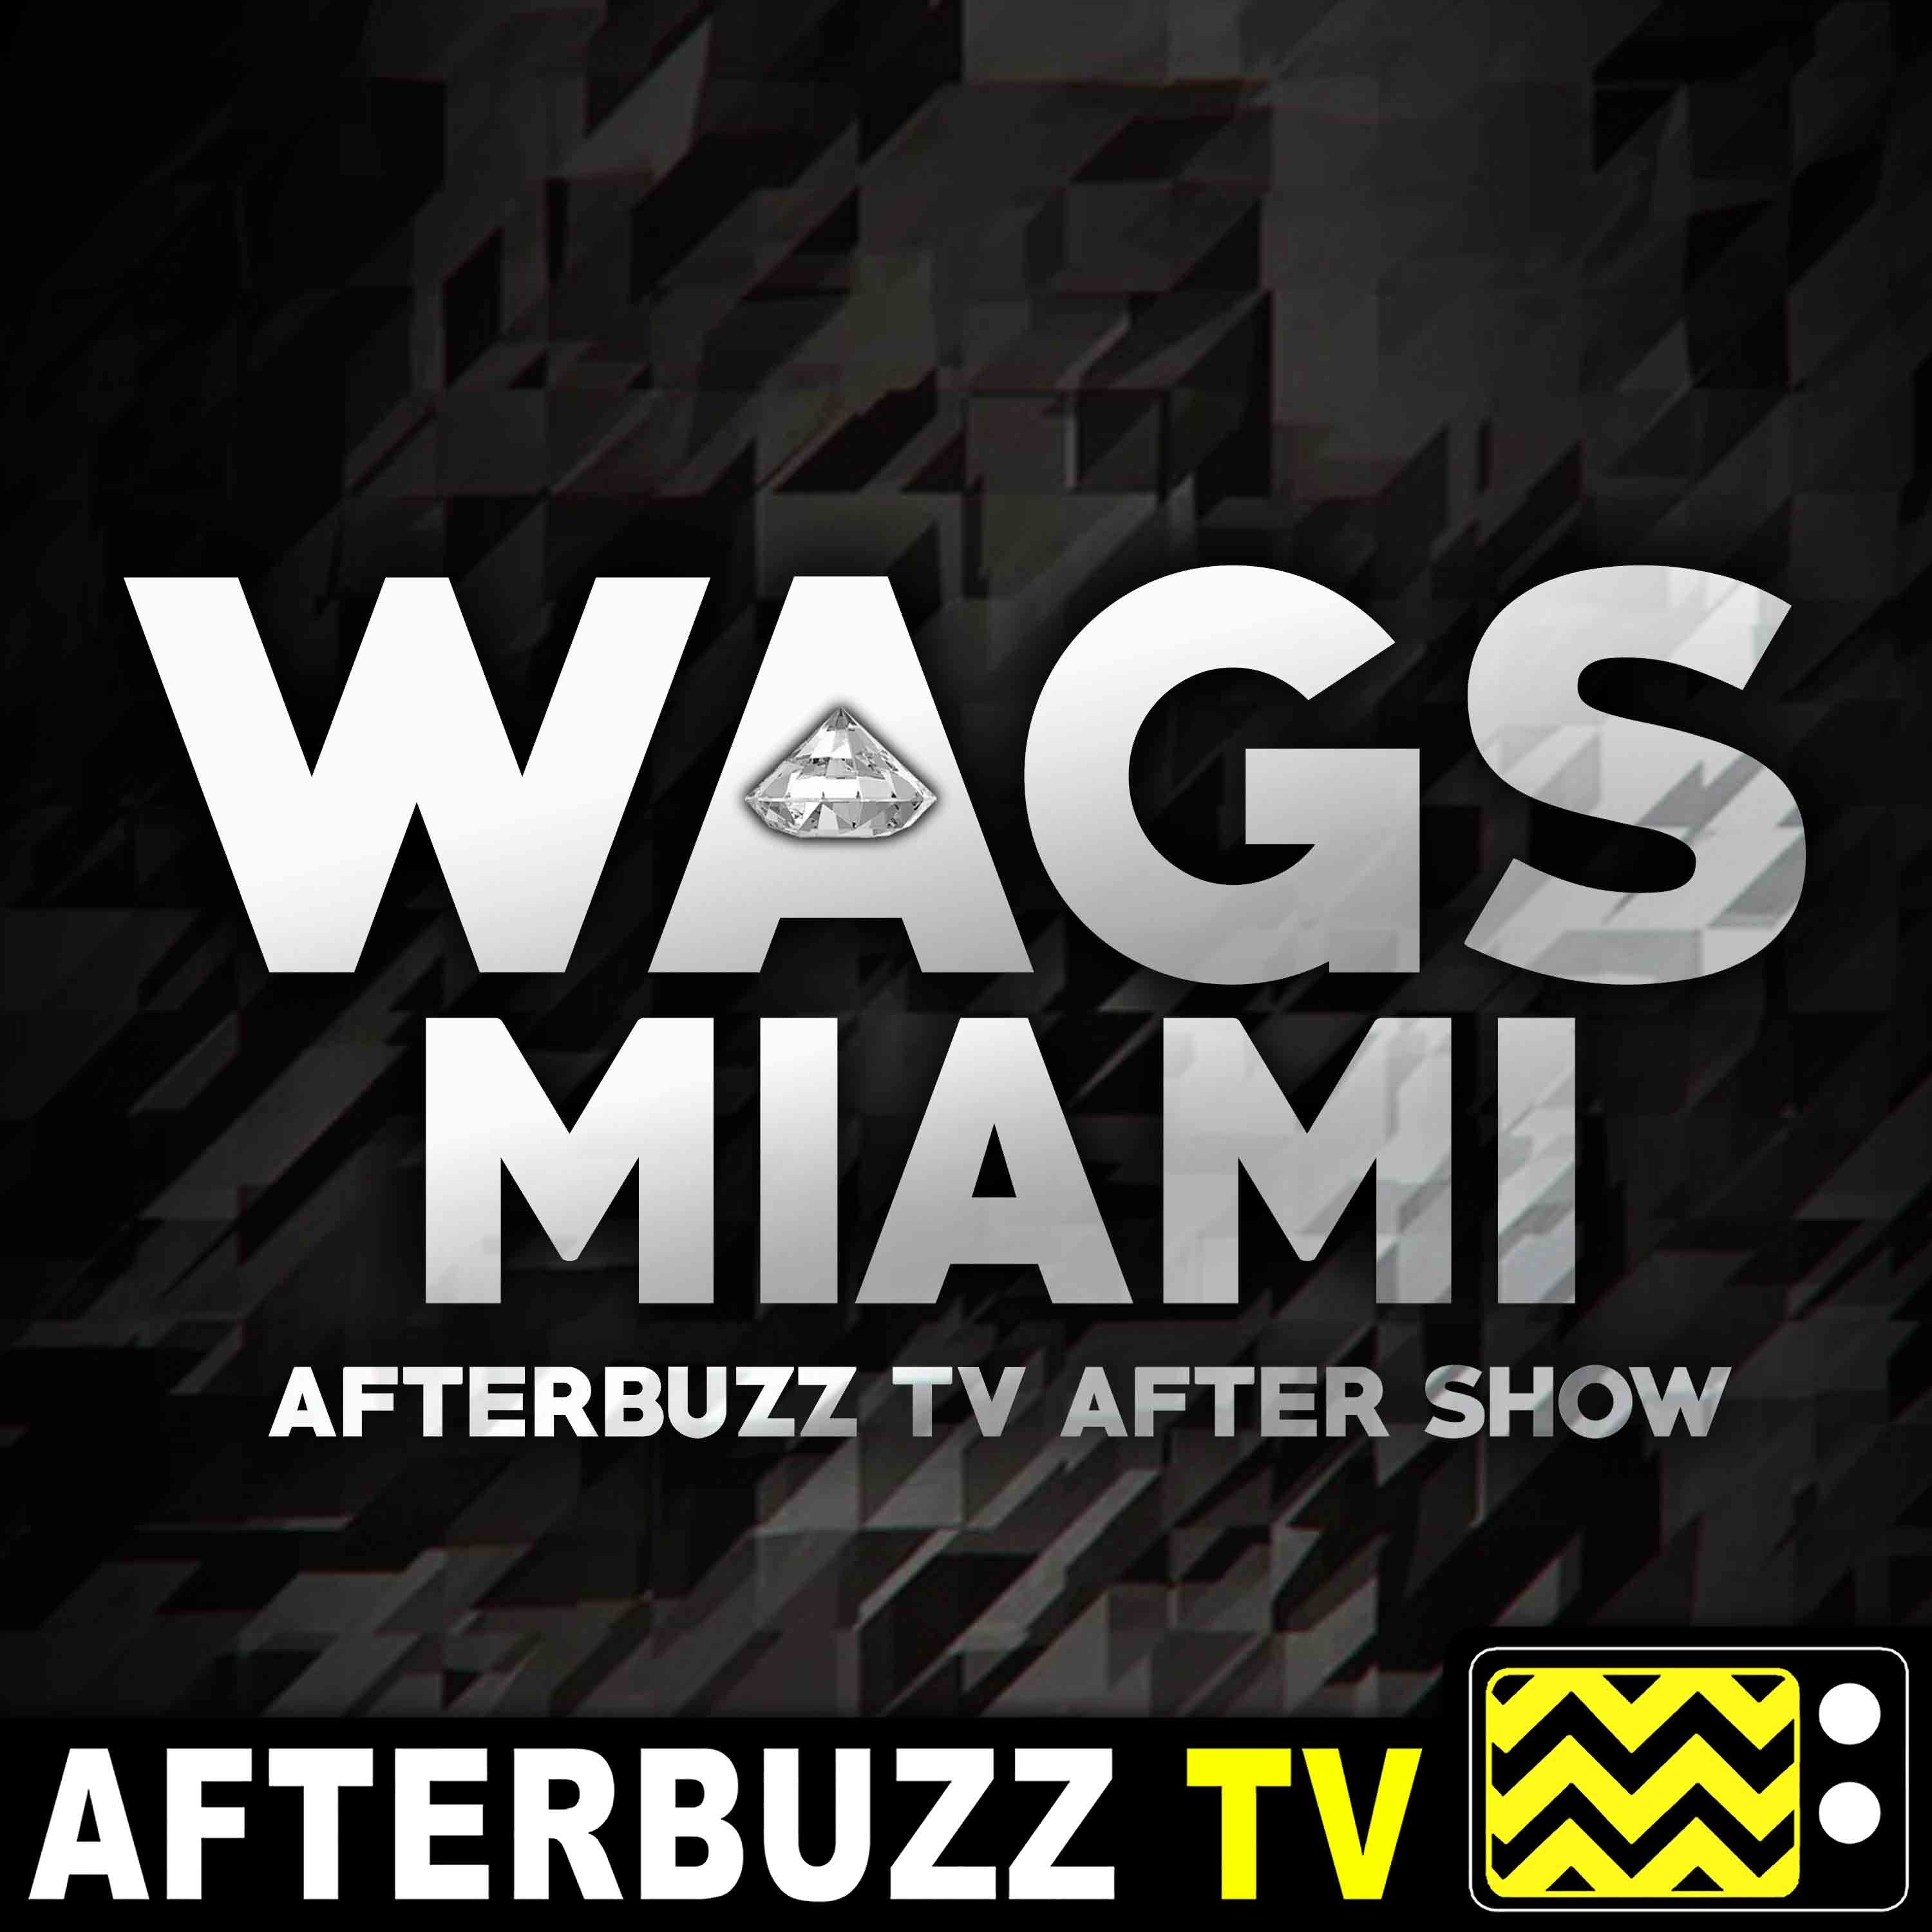 WAGS: Miami S:2 | Astrid Bavaresco Guests On Dueling Matchmakers 2 E:3 | AfterBuzz TV AfterShow